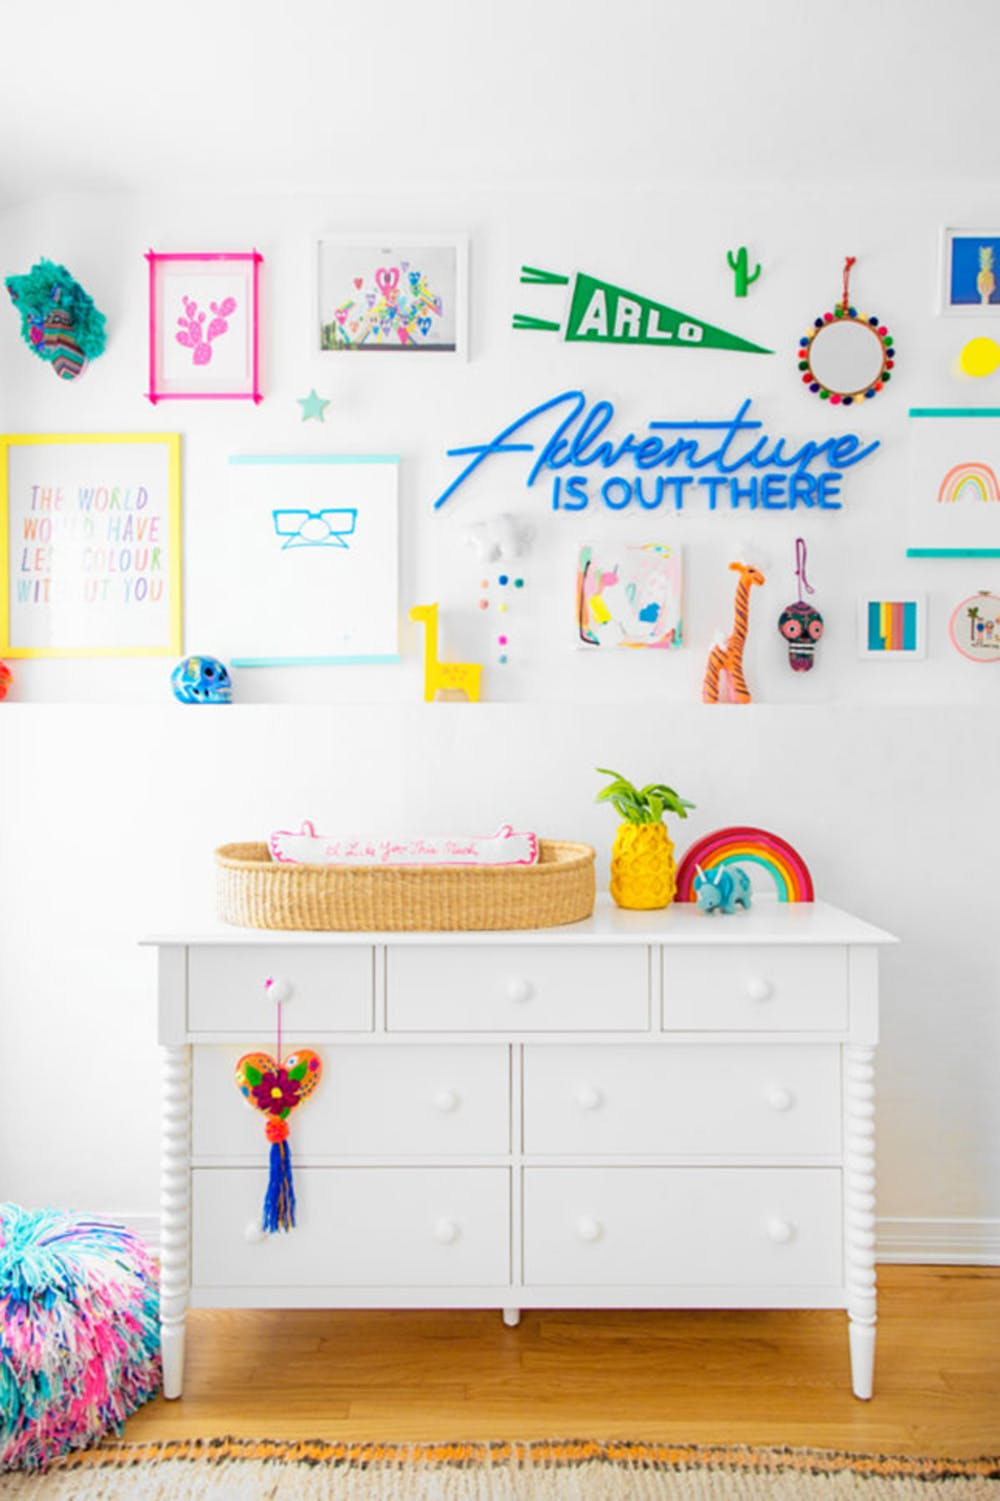 Rainbow-inspired gallery walls